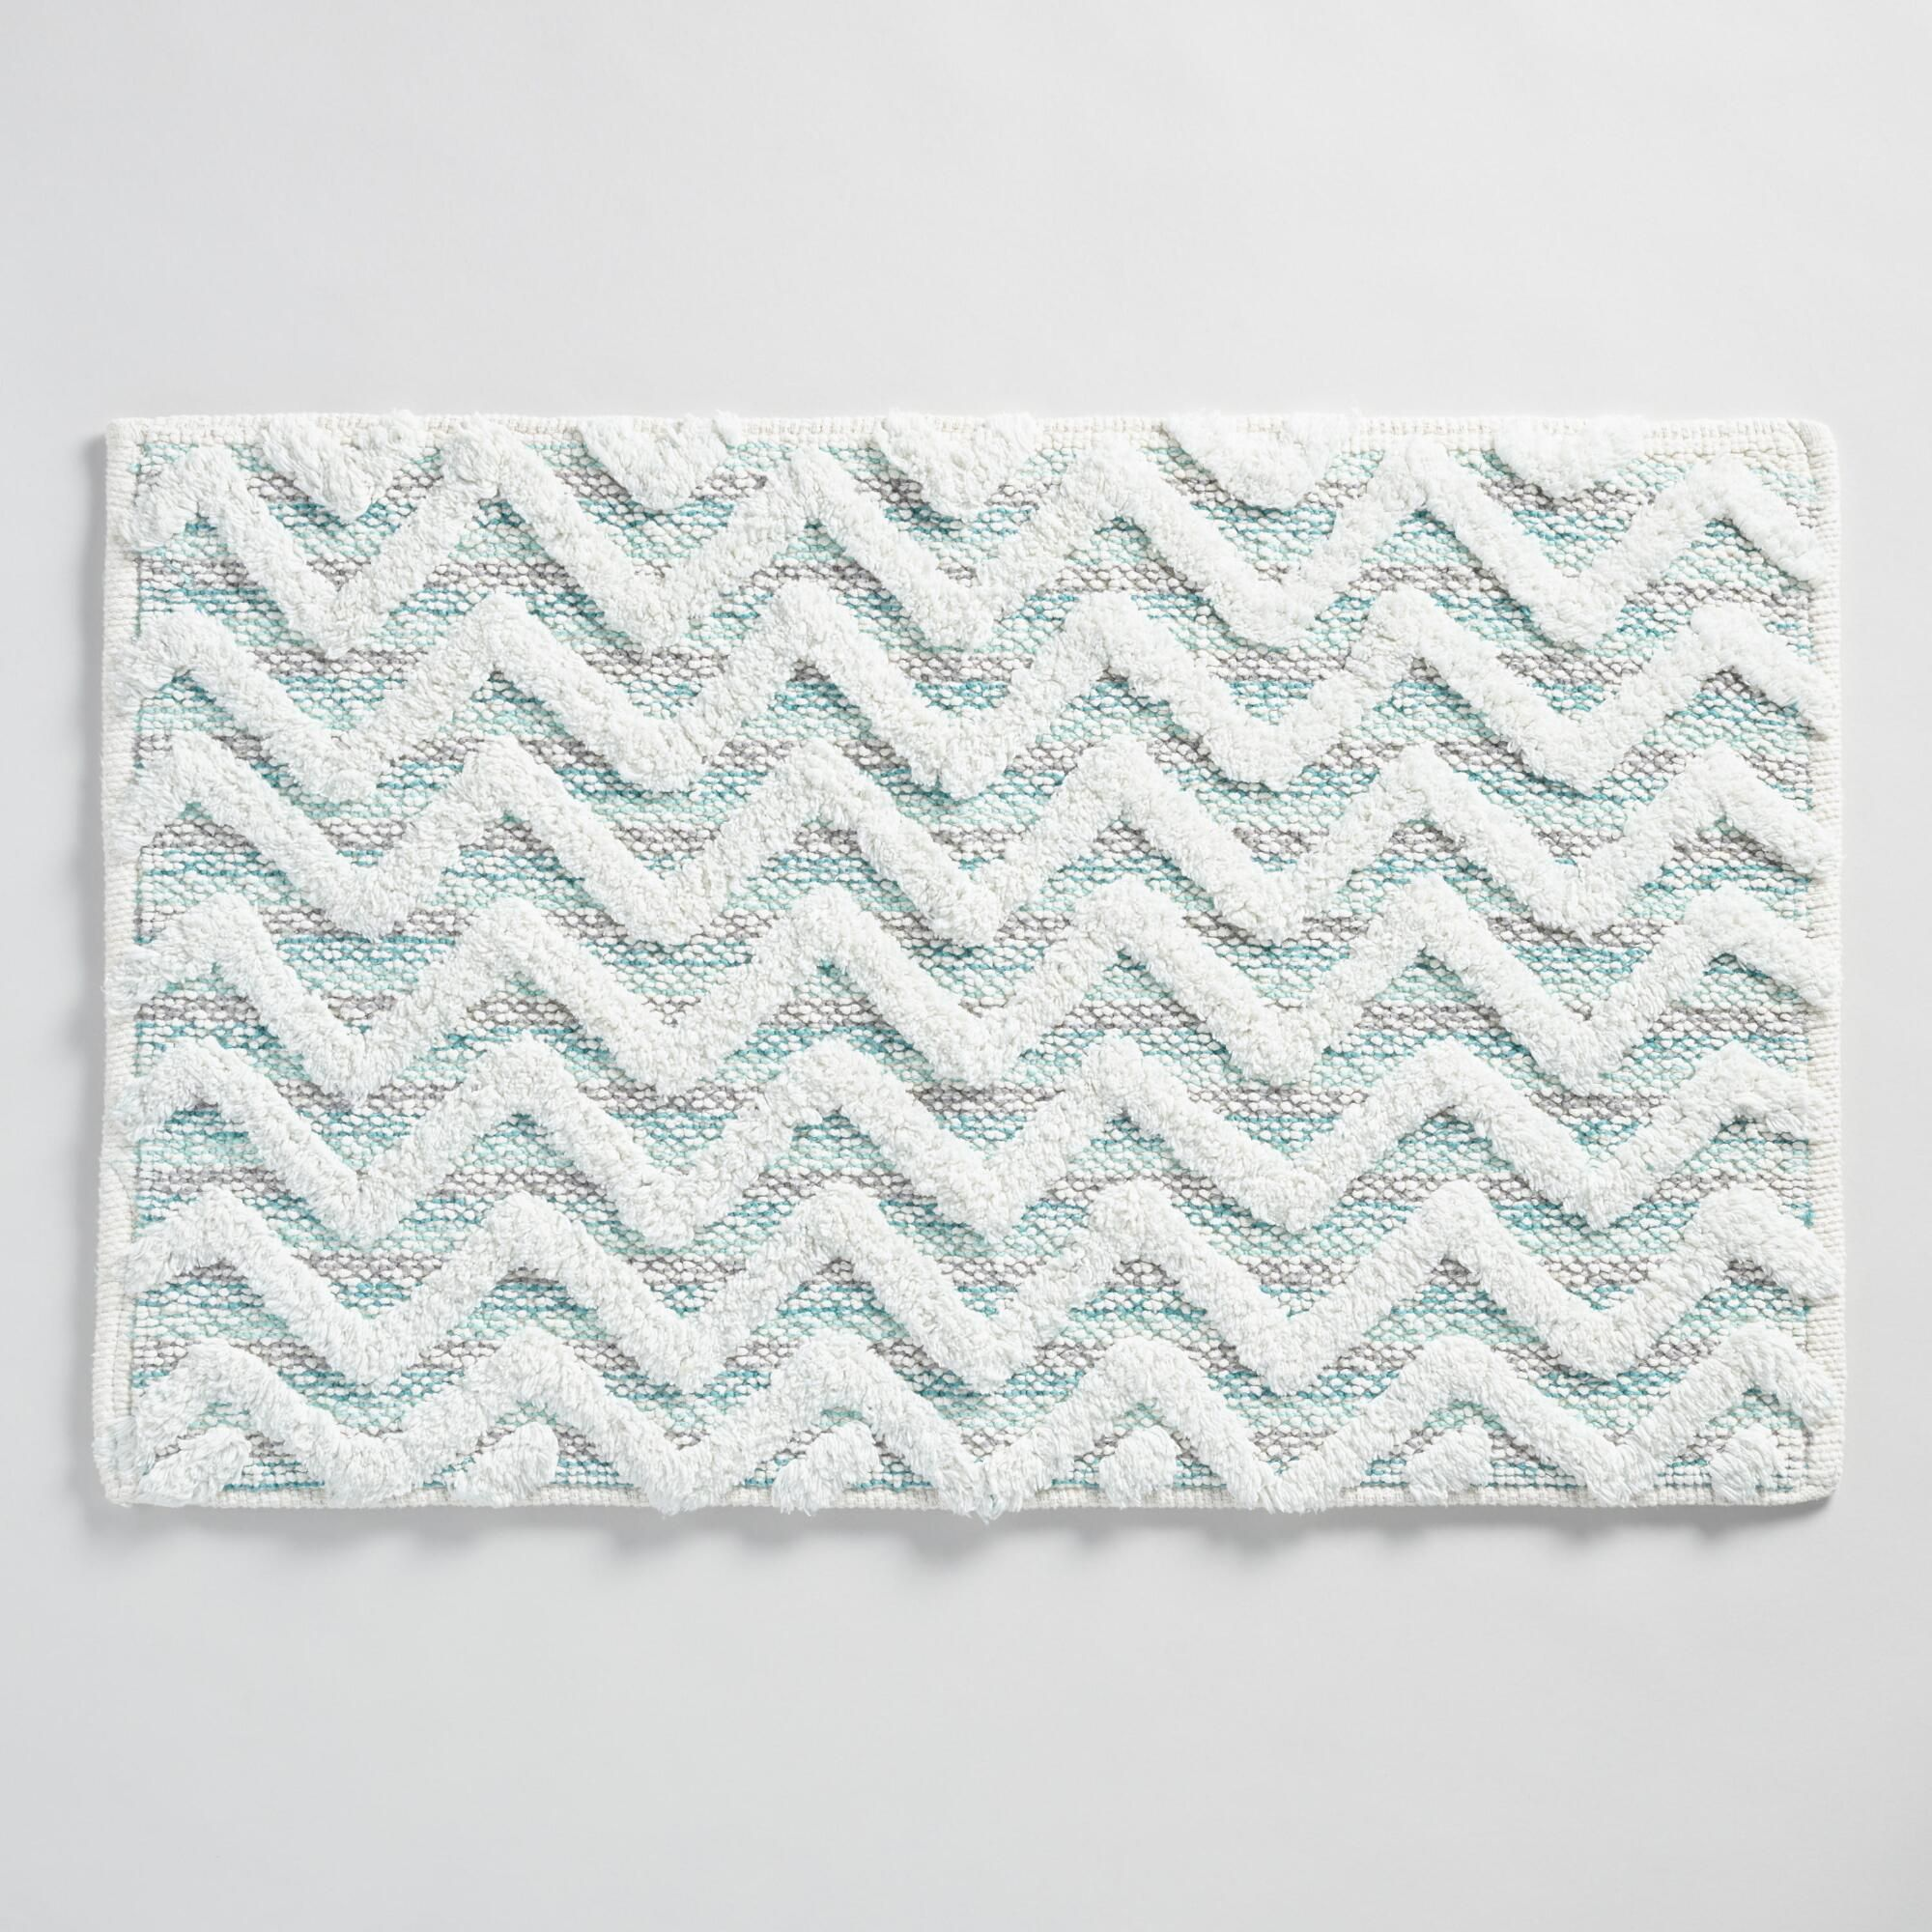 Refresh Your Bathroom Look Easily With Our Soft Woven Cotton Bath Mat It Features A Tufted Chevron Design In Bath Rugs Sets Modern Bathroom Rug Small Bath Mat [ 2000 x 2000 Pixel ]